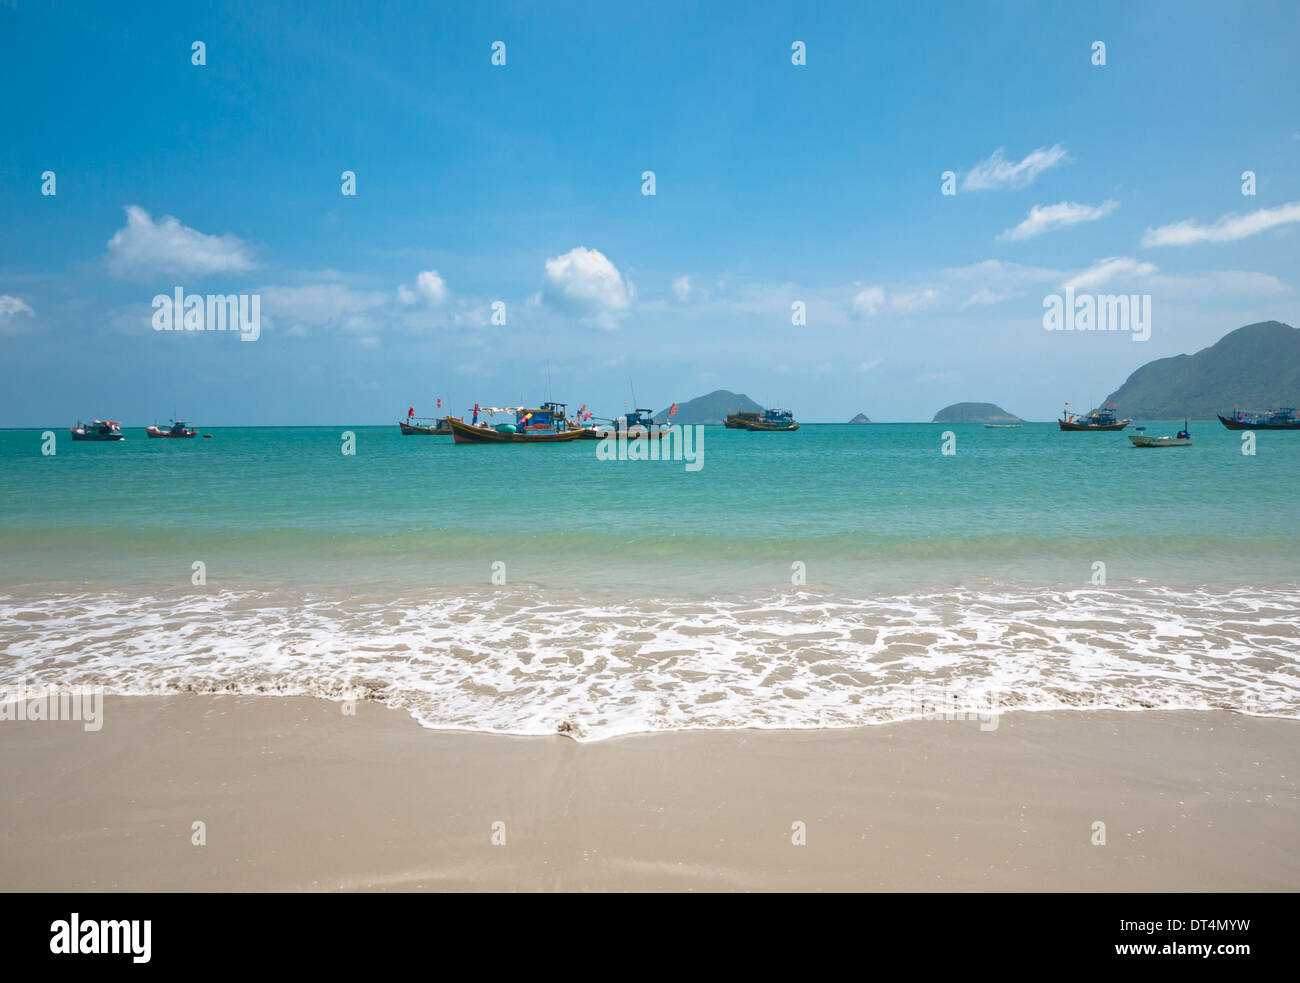 A view of the South China Sea just off An Hai Beach on Con Son Island, one of the Con Dao Islands, Vietnam. - Stock Image